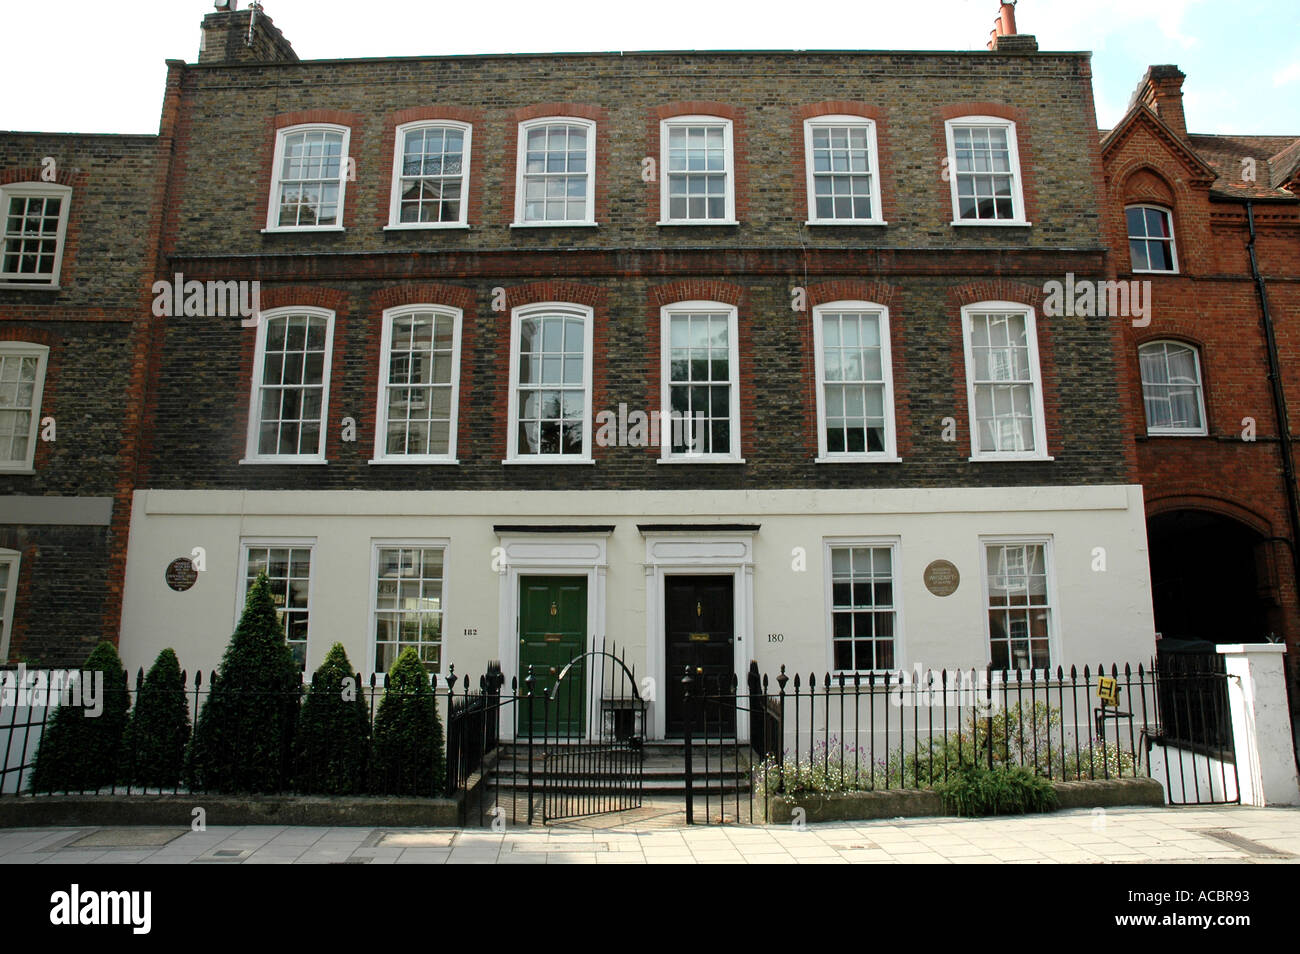 Adjoining Houses in Chelsea London with Blue Plaques-One ...